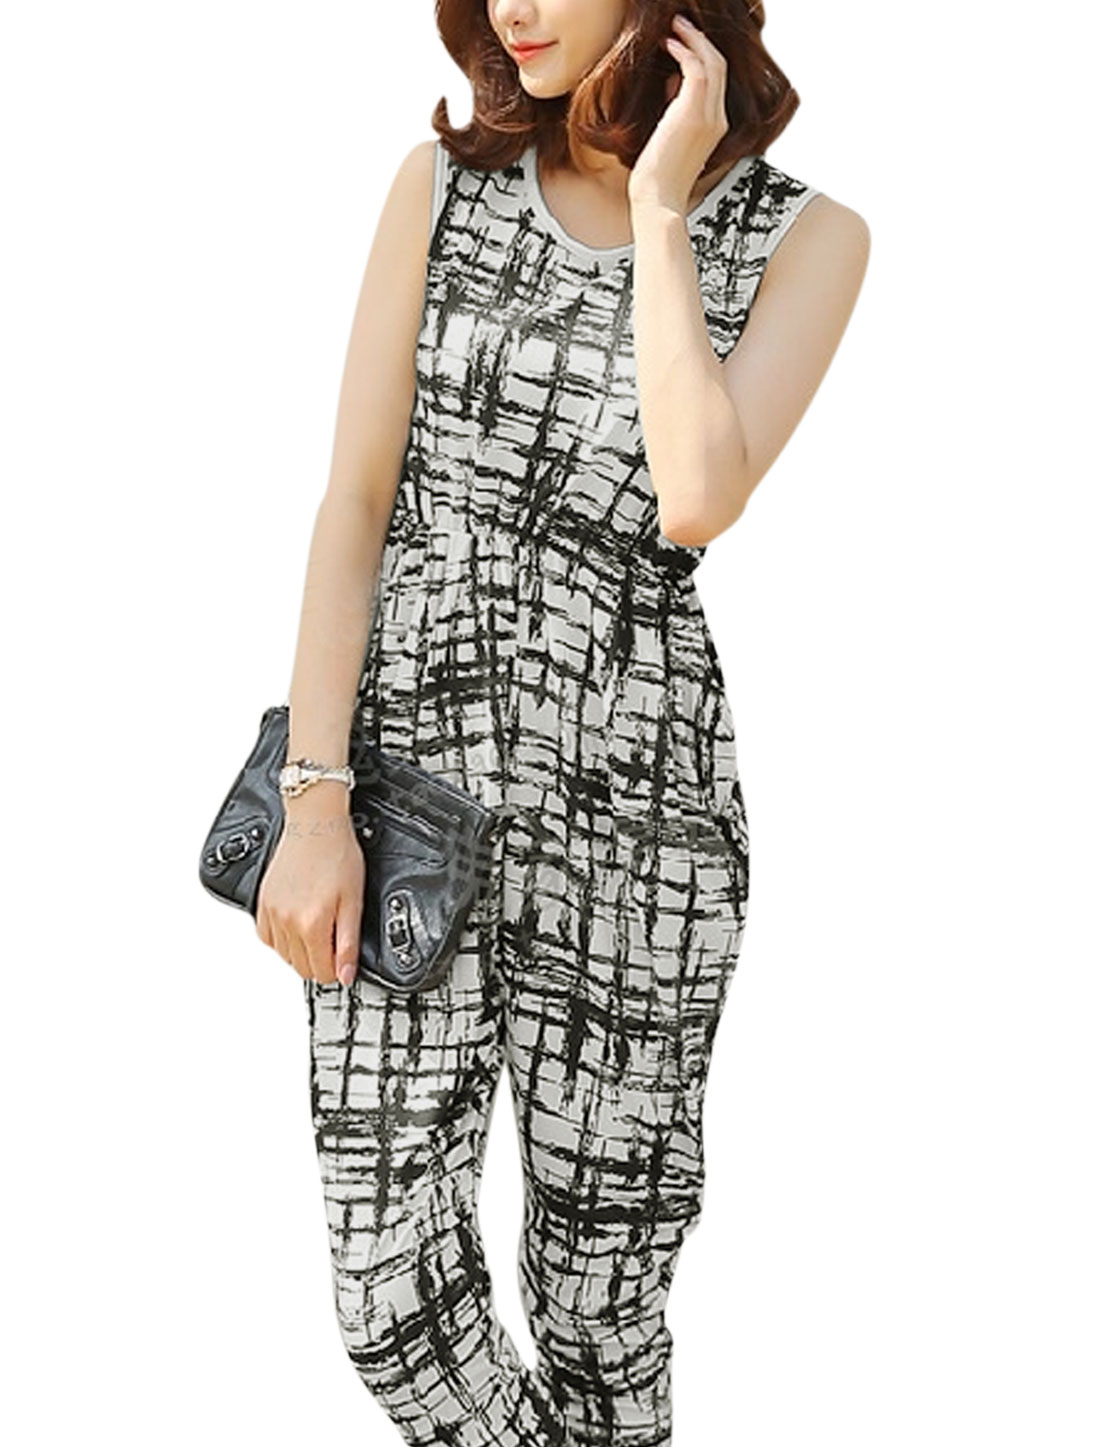 Women Round Neck Sleeveless Elastic Waist Novelty Prints Jumpsuit Black White S